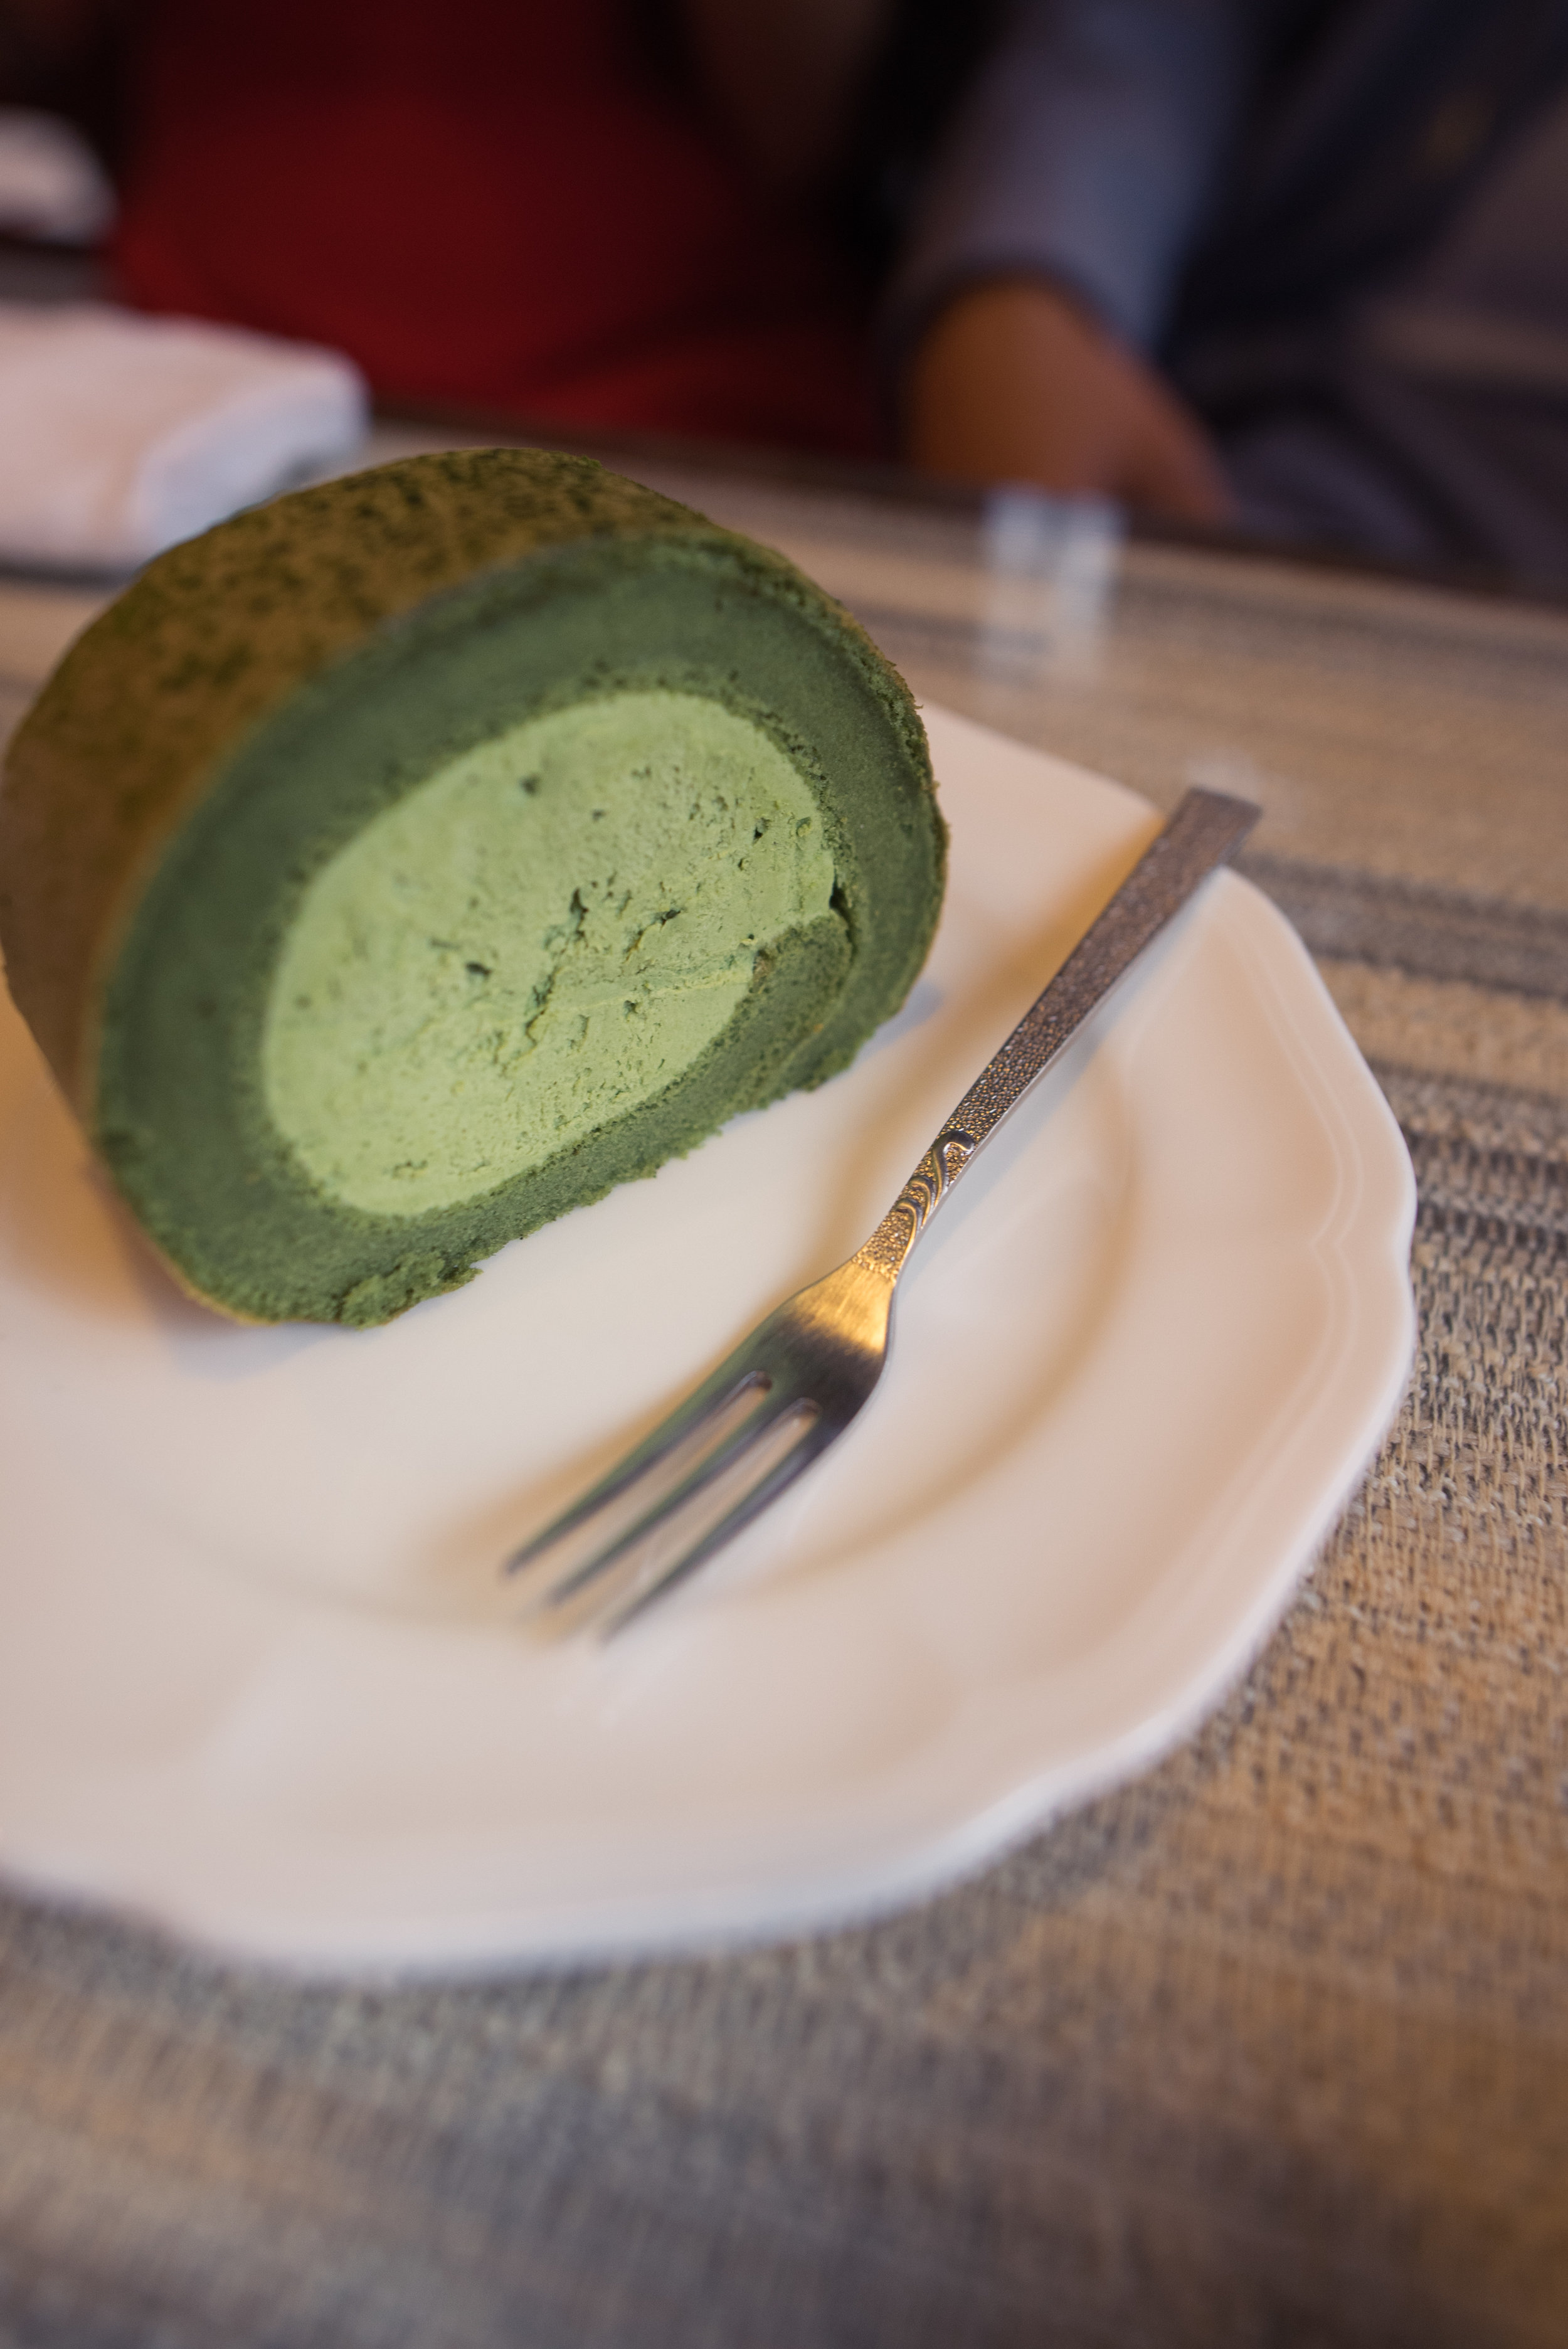 Sampling our first taste of matcha cake. It was incredibly moist and not overly sweet.